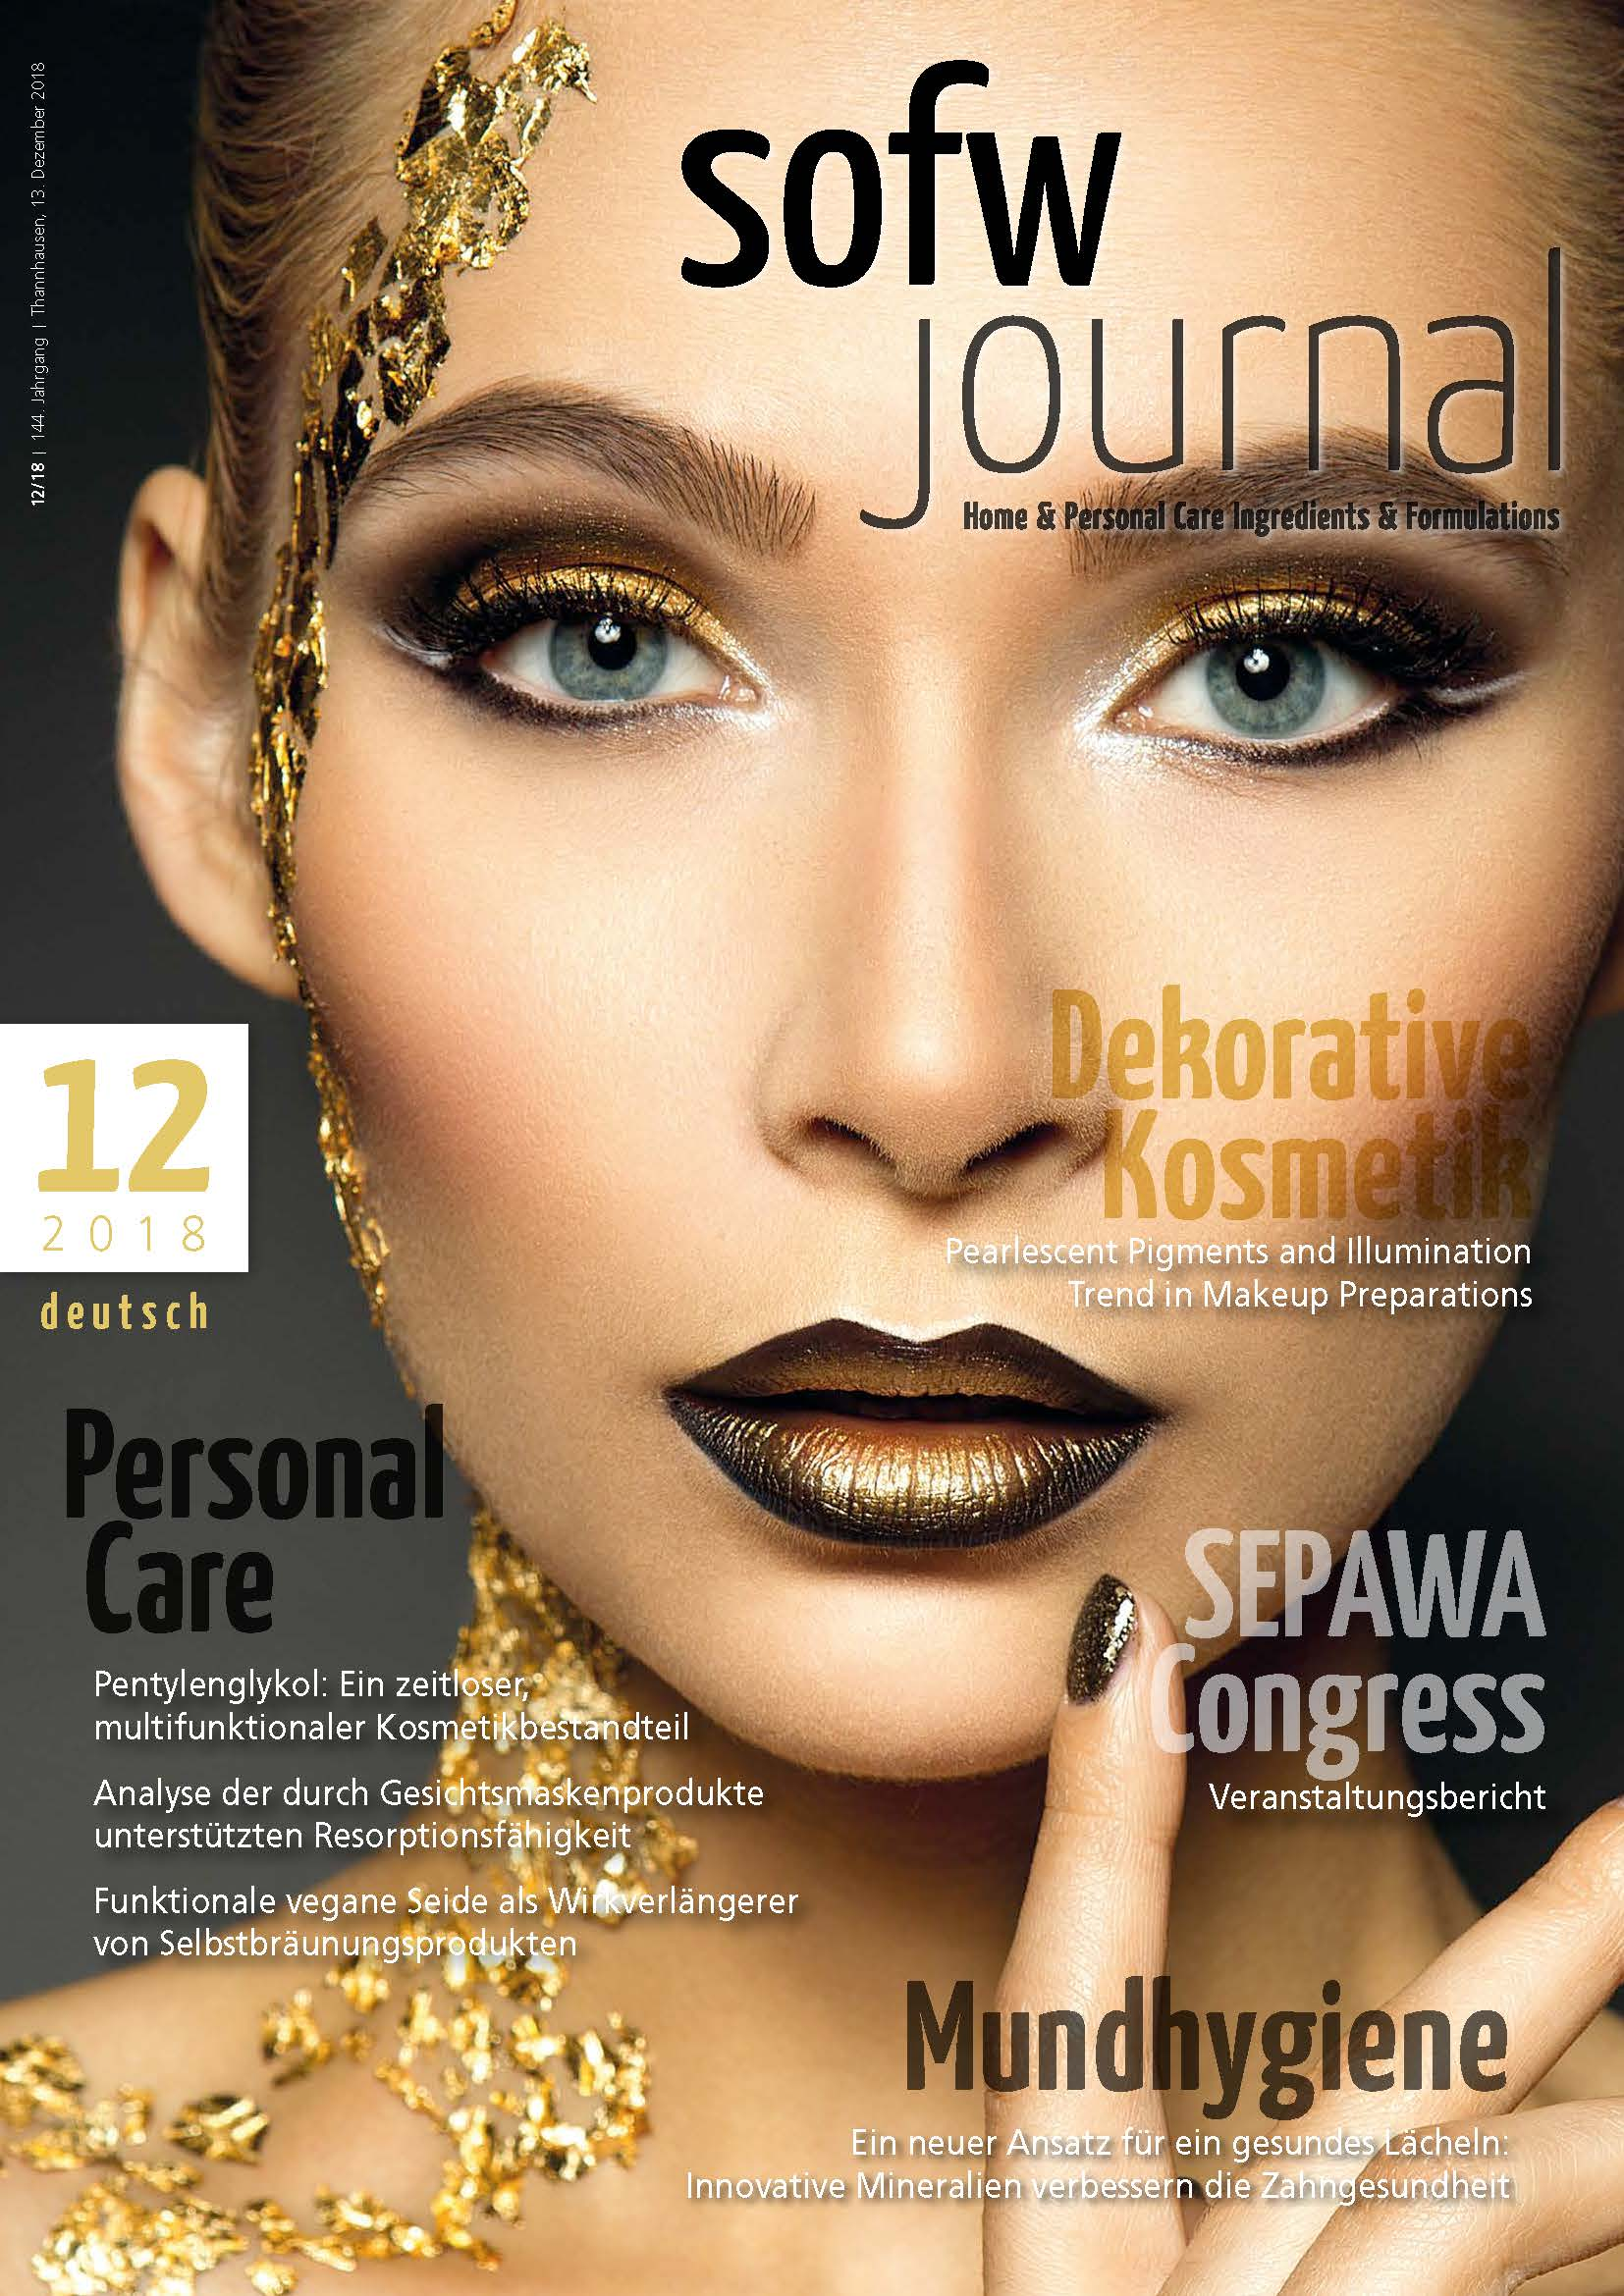 sofwjournal_de_2018_12_cover_122122492